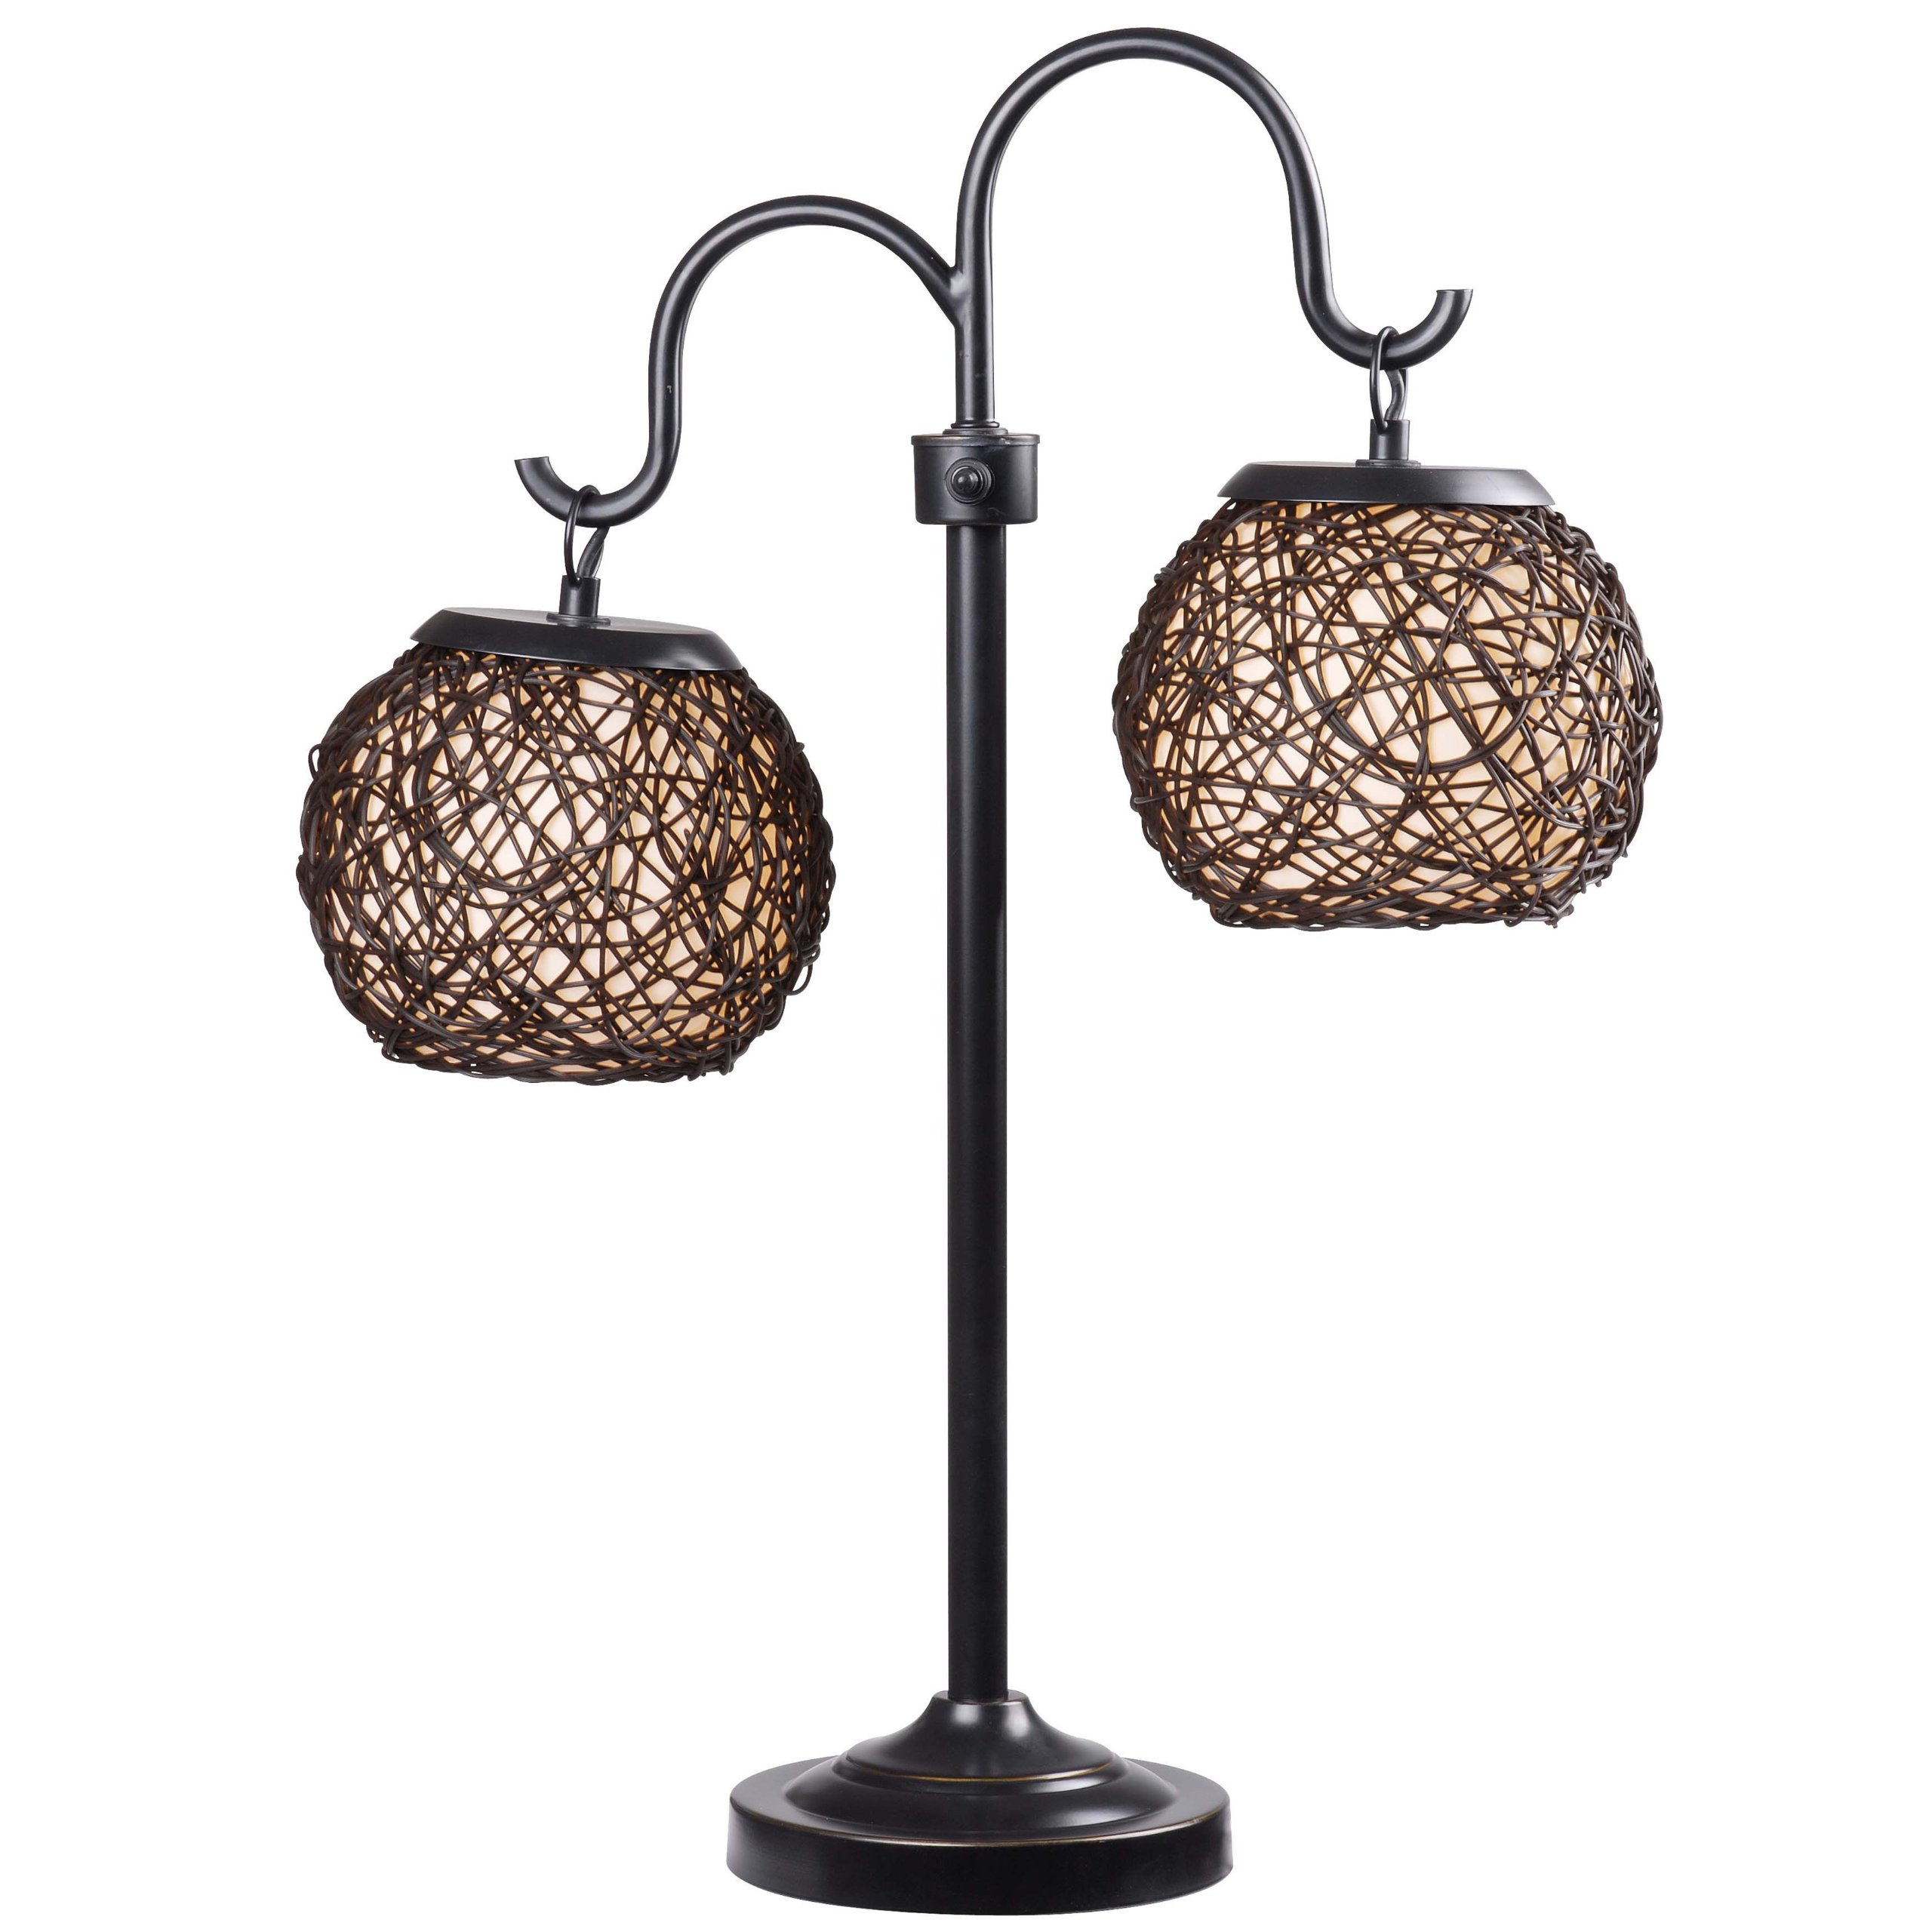 Kenroy Home 32245BRZ Castillo Outdoor Table Lamp, Bronze Finish by Kenroy Home (Image #1)